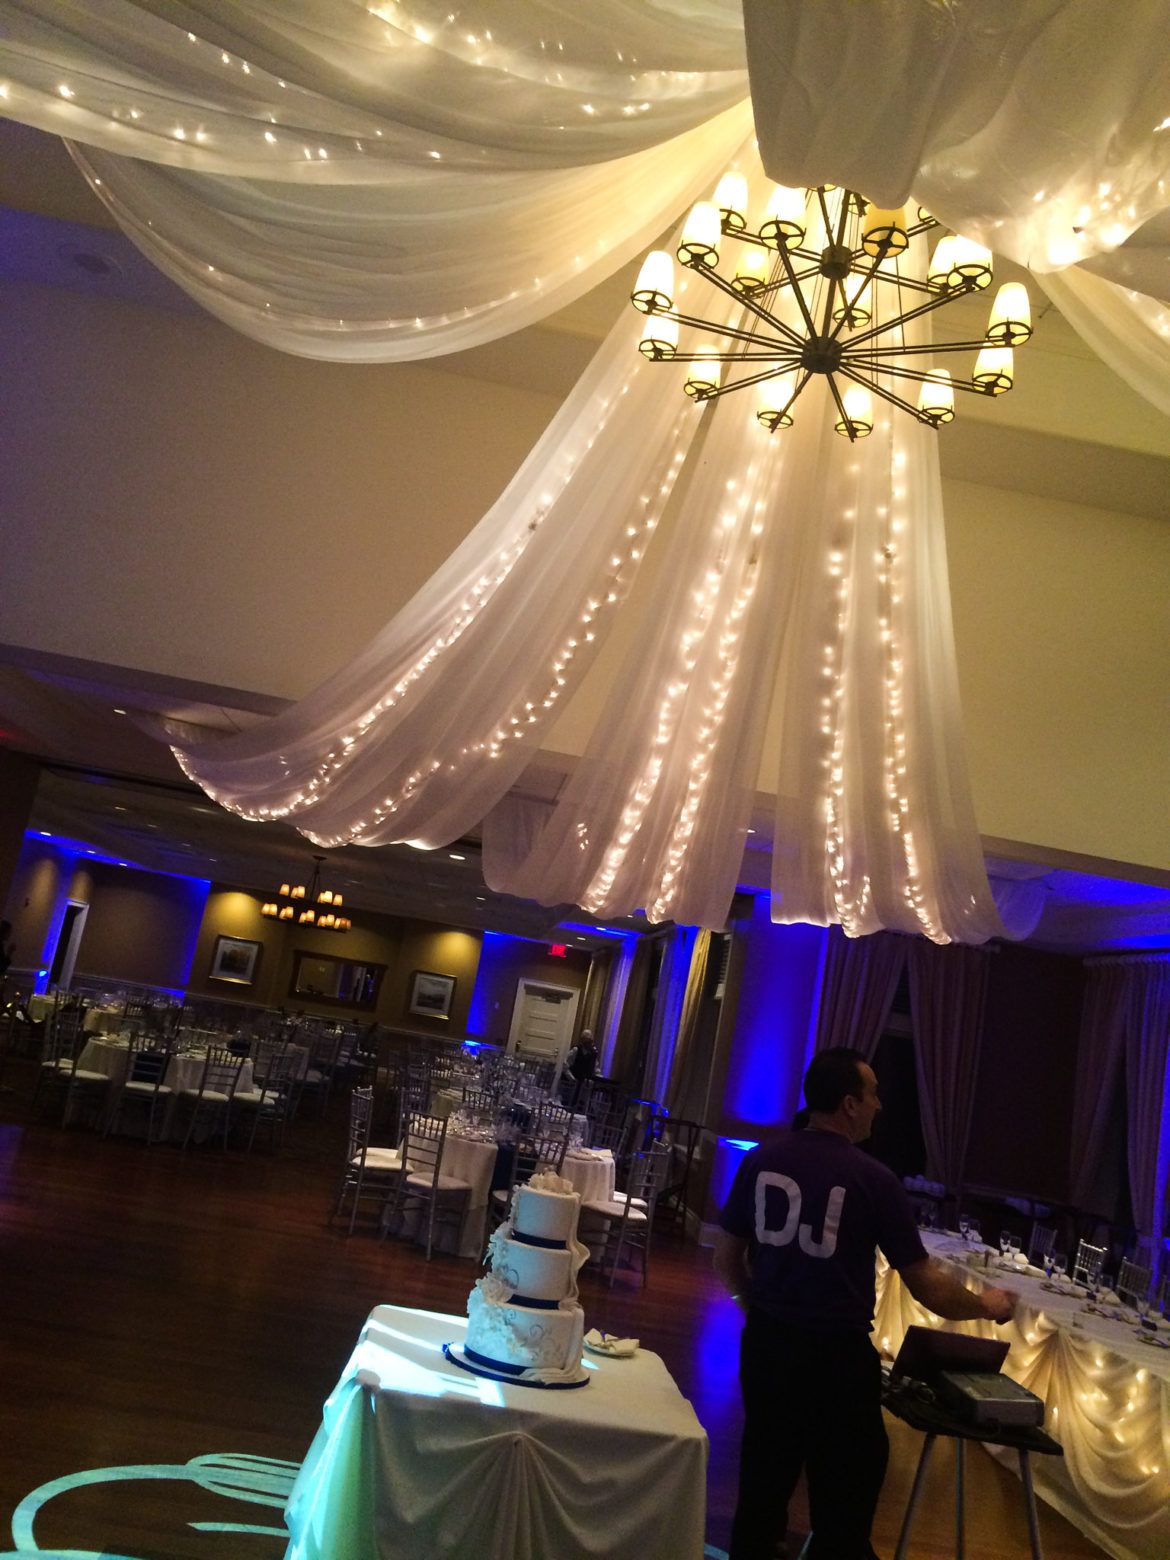 Elegant_Event_Lighting_Chicago_Arrowhead_Golf_Club_Wheaton_Wedding_Ceiling_Drapes_Twinkle_Lights_Starburst_Blue_LED_Uplighting